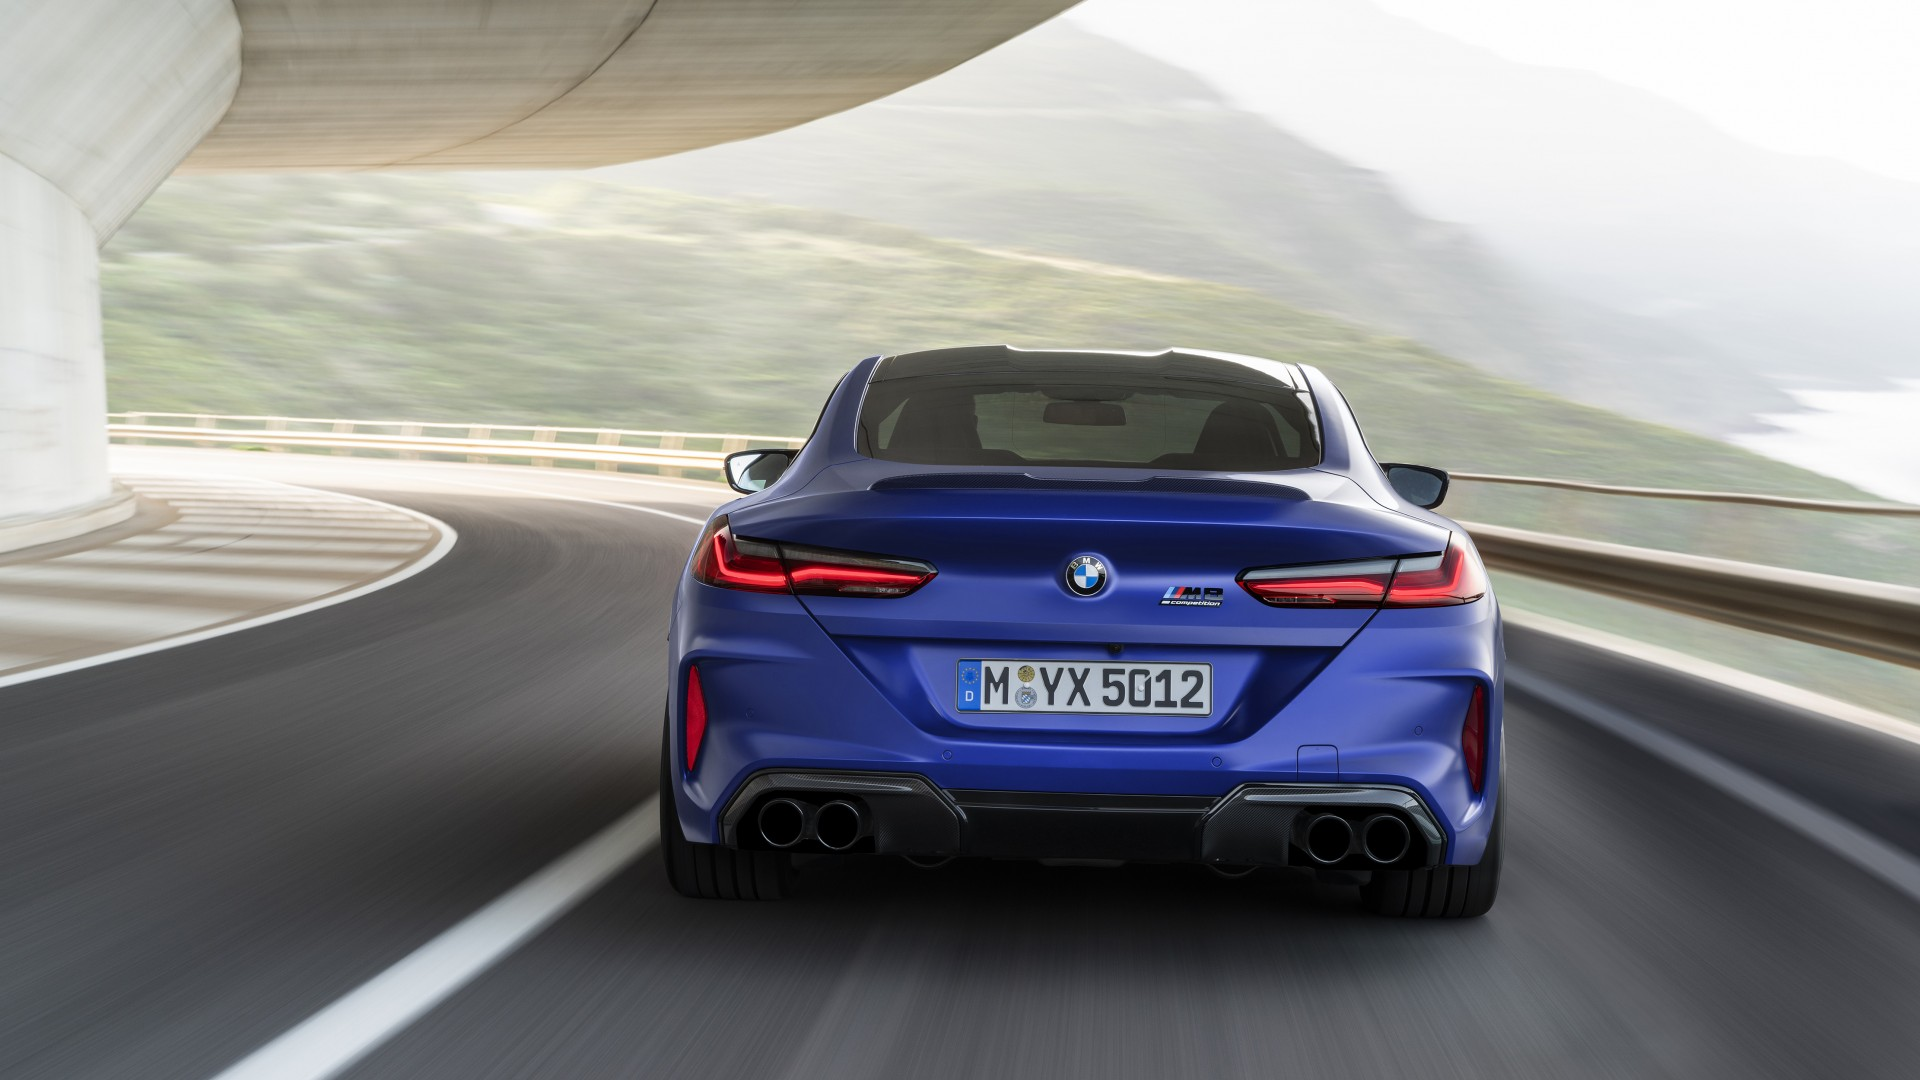 BMW M8 Competition Coupe 2019 4K 4 Wallpaper | HD Car Wallpapers | ID #12696